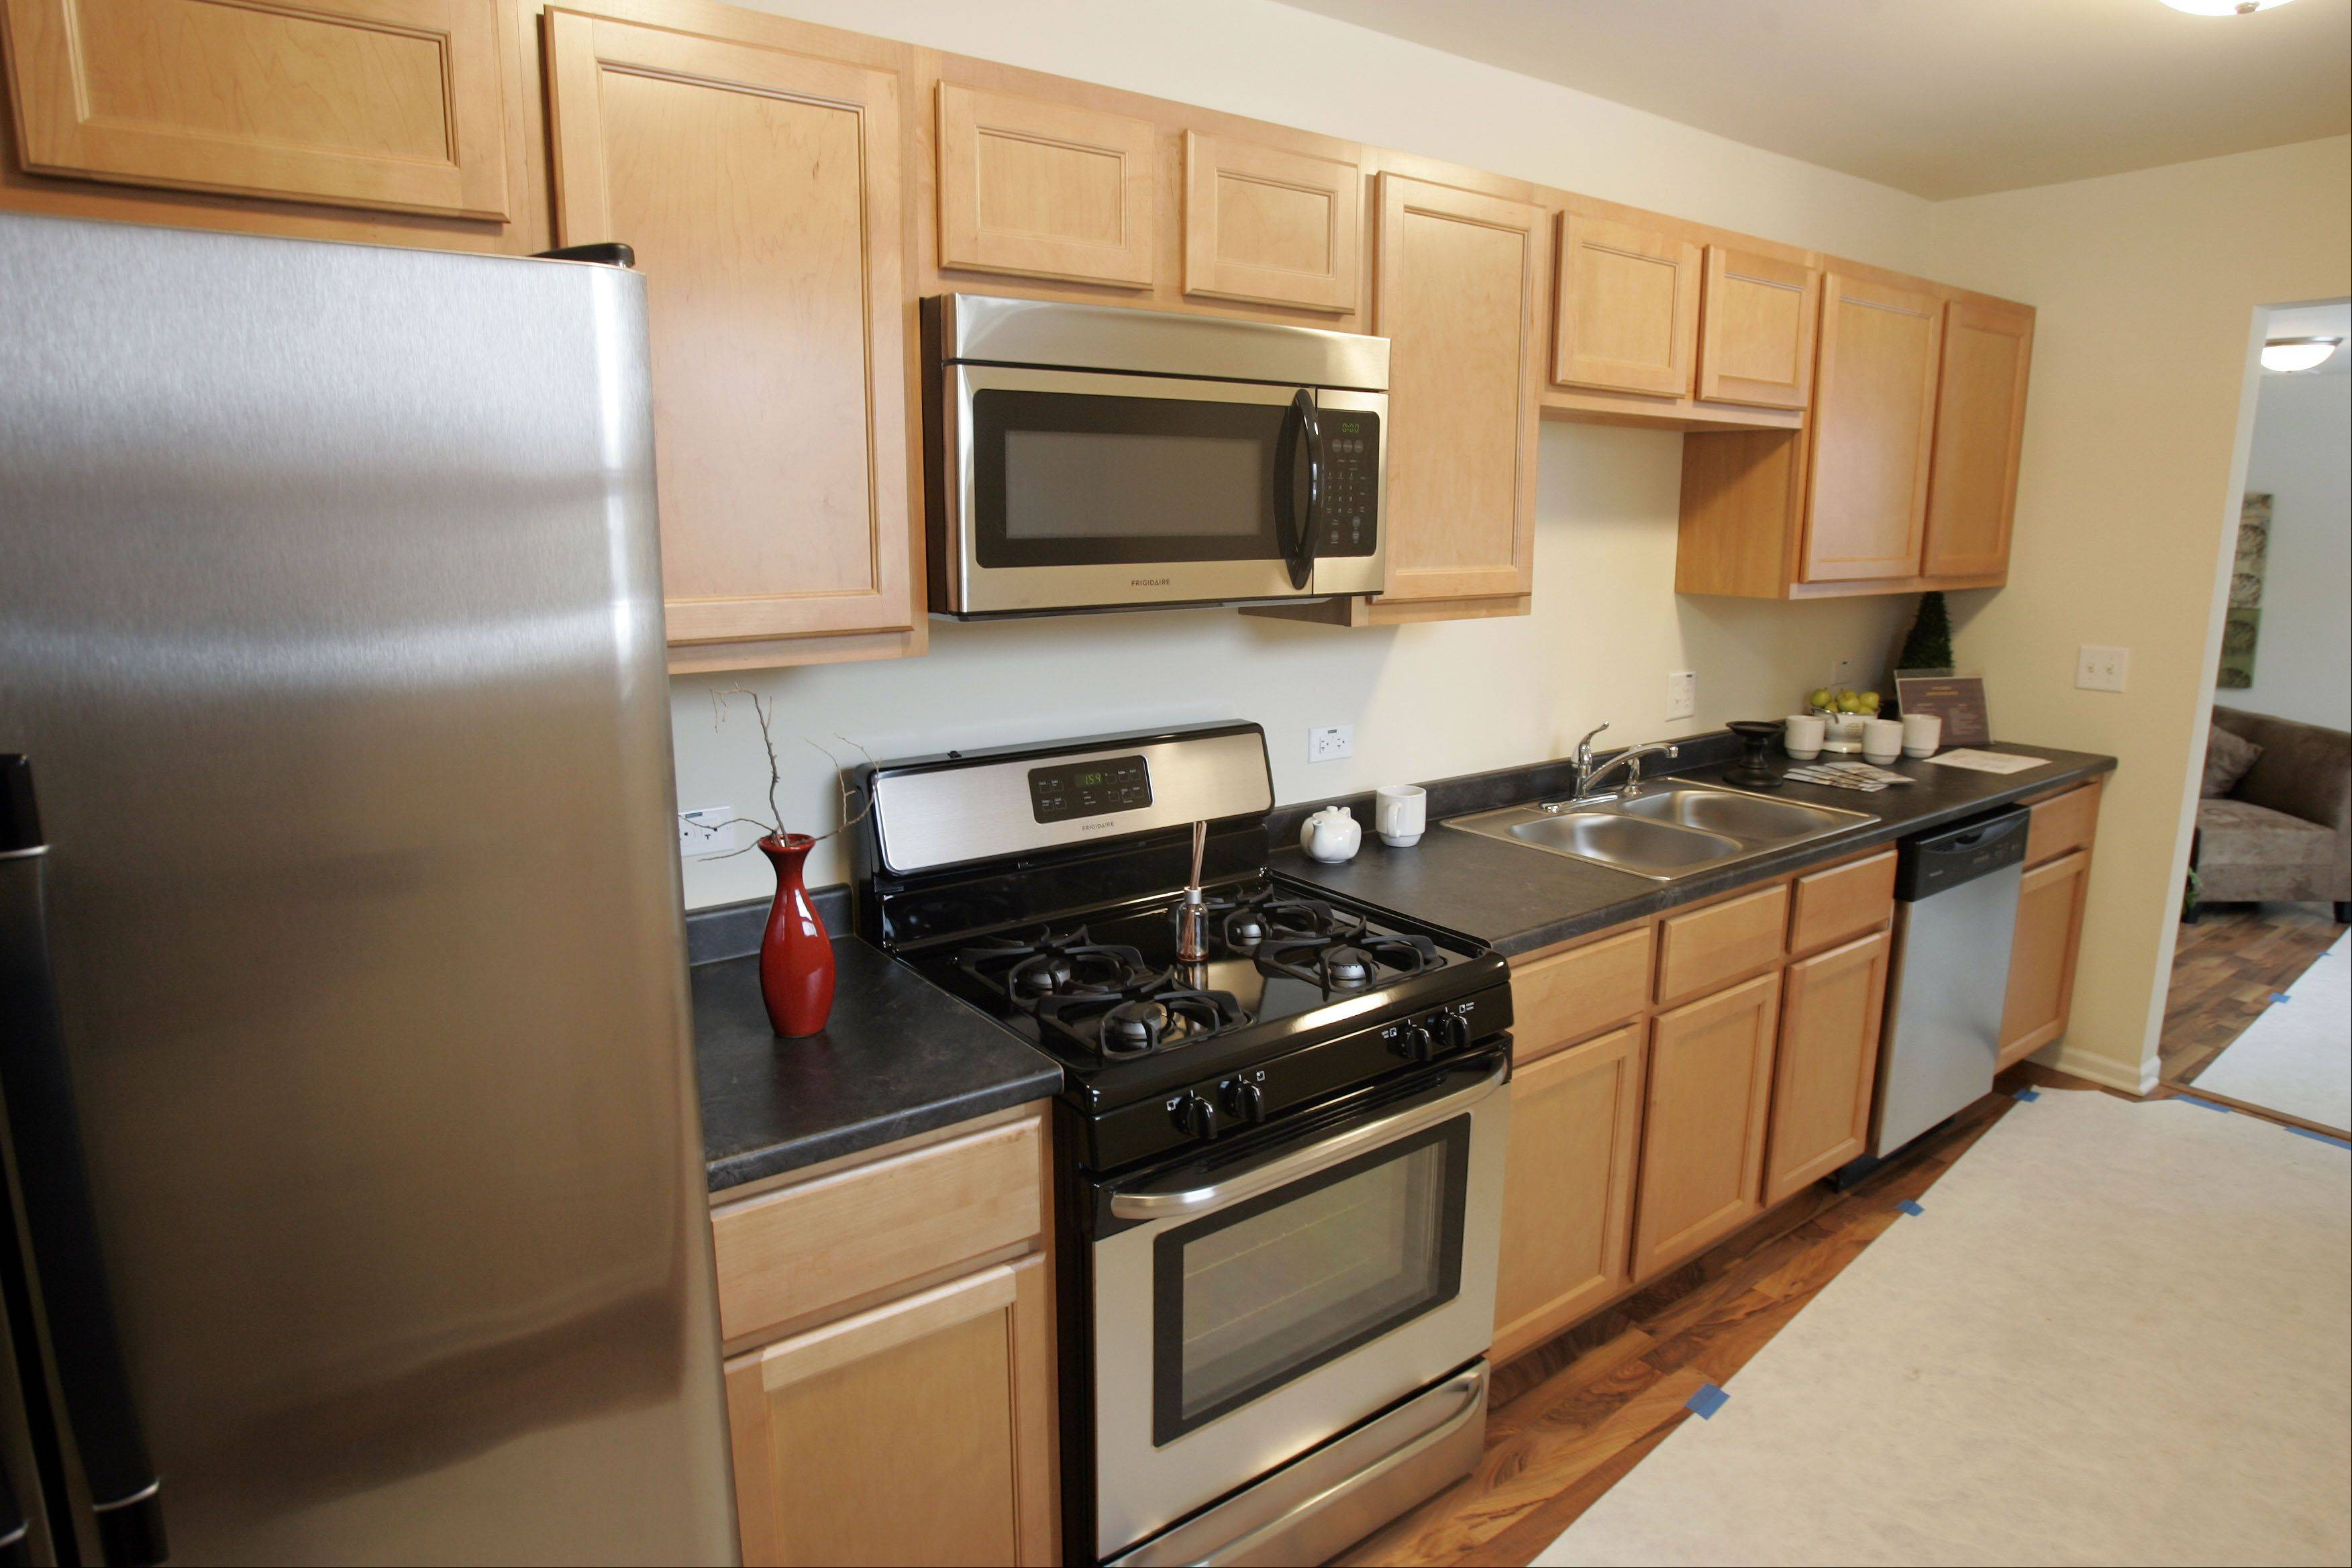 A kitchen in one of the many rehabbed houses being sold by Homes by OTTO in Carpentersville.